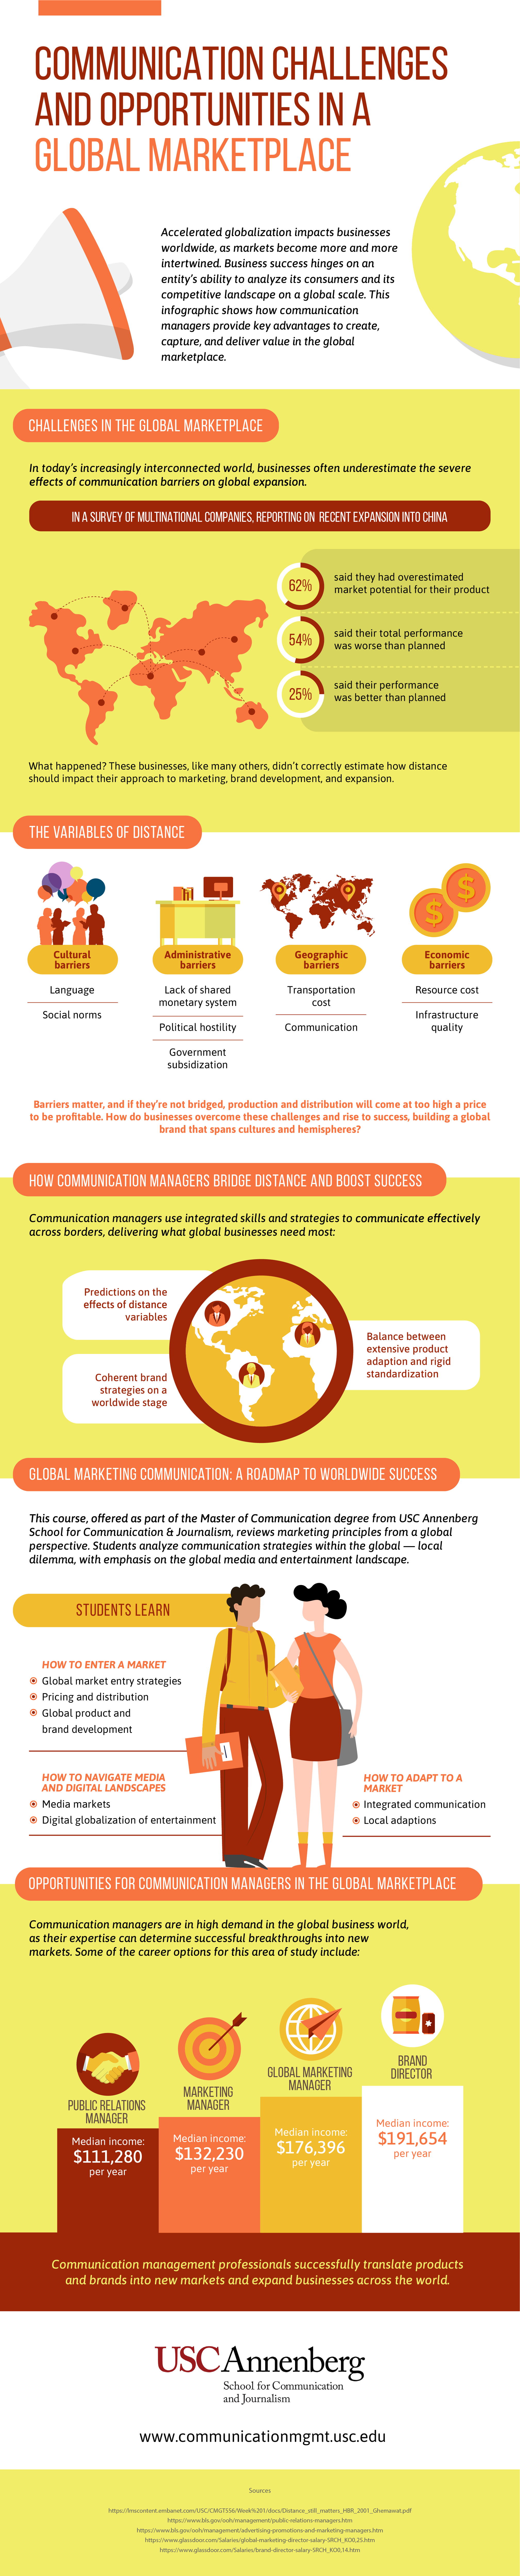 An infographic about how communication managers translate brands into new markets by the USC Annenberg School for Communication and Journalism online.